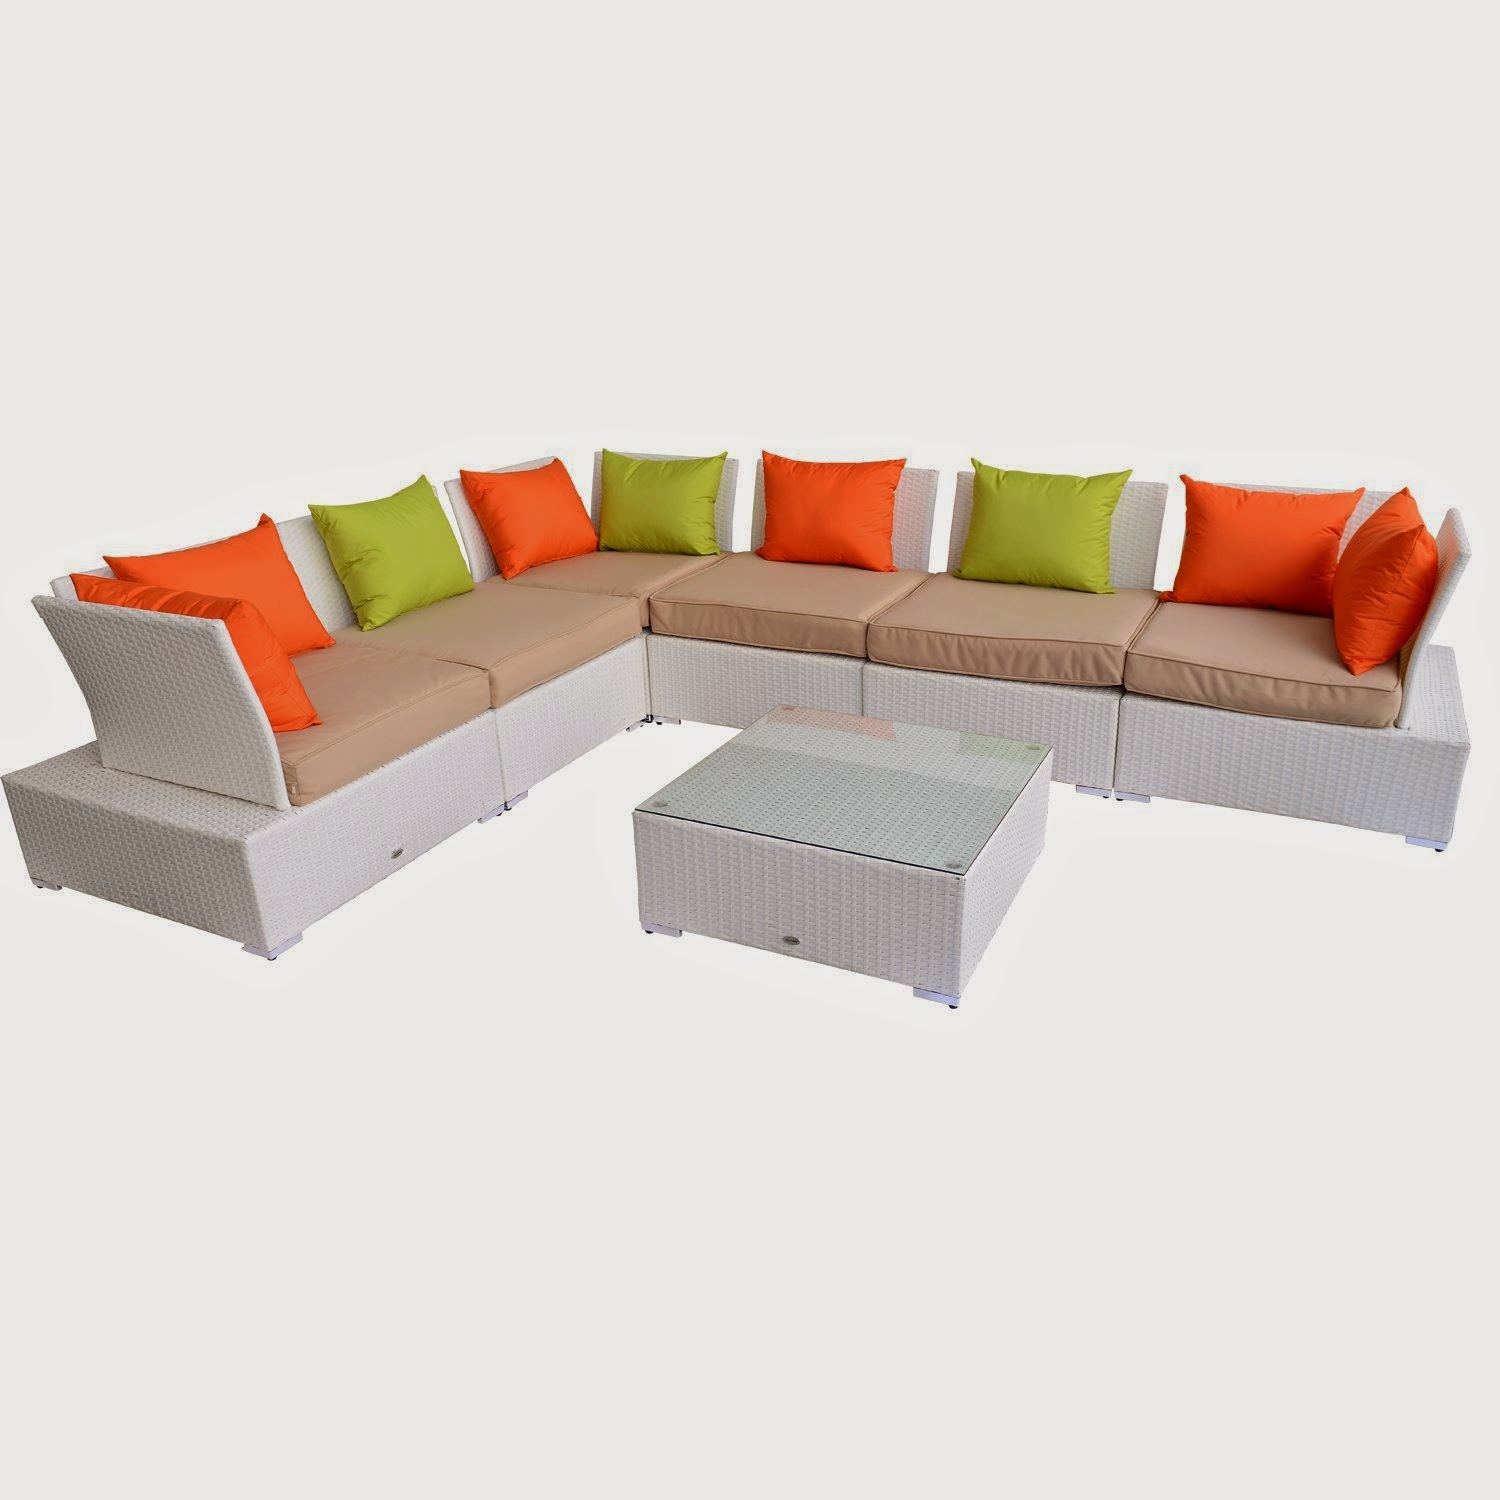 Discount Until 62 Outsunny Outdoor 7pc Pe Rattan Wicker Sectional Sectional Couch Sofa Set